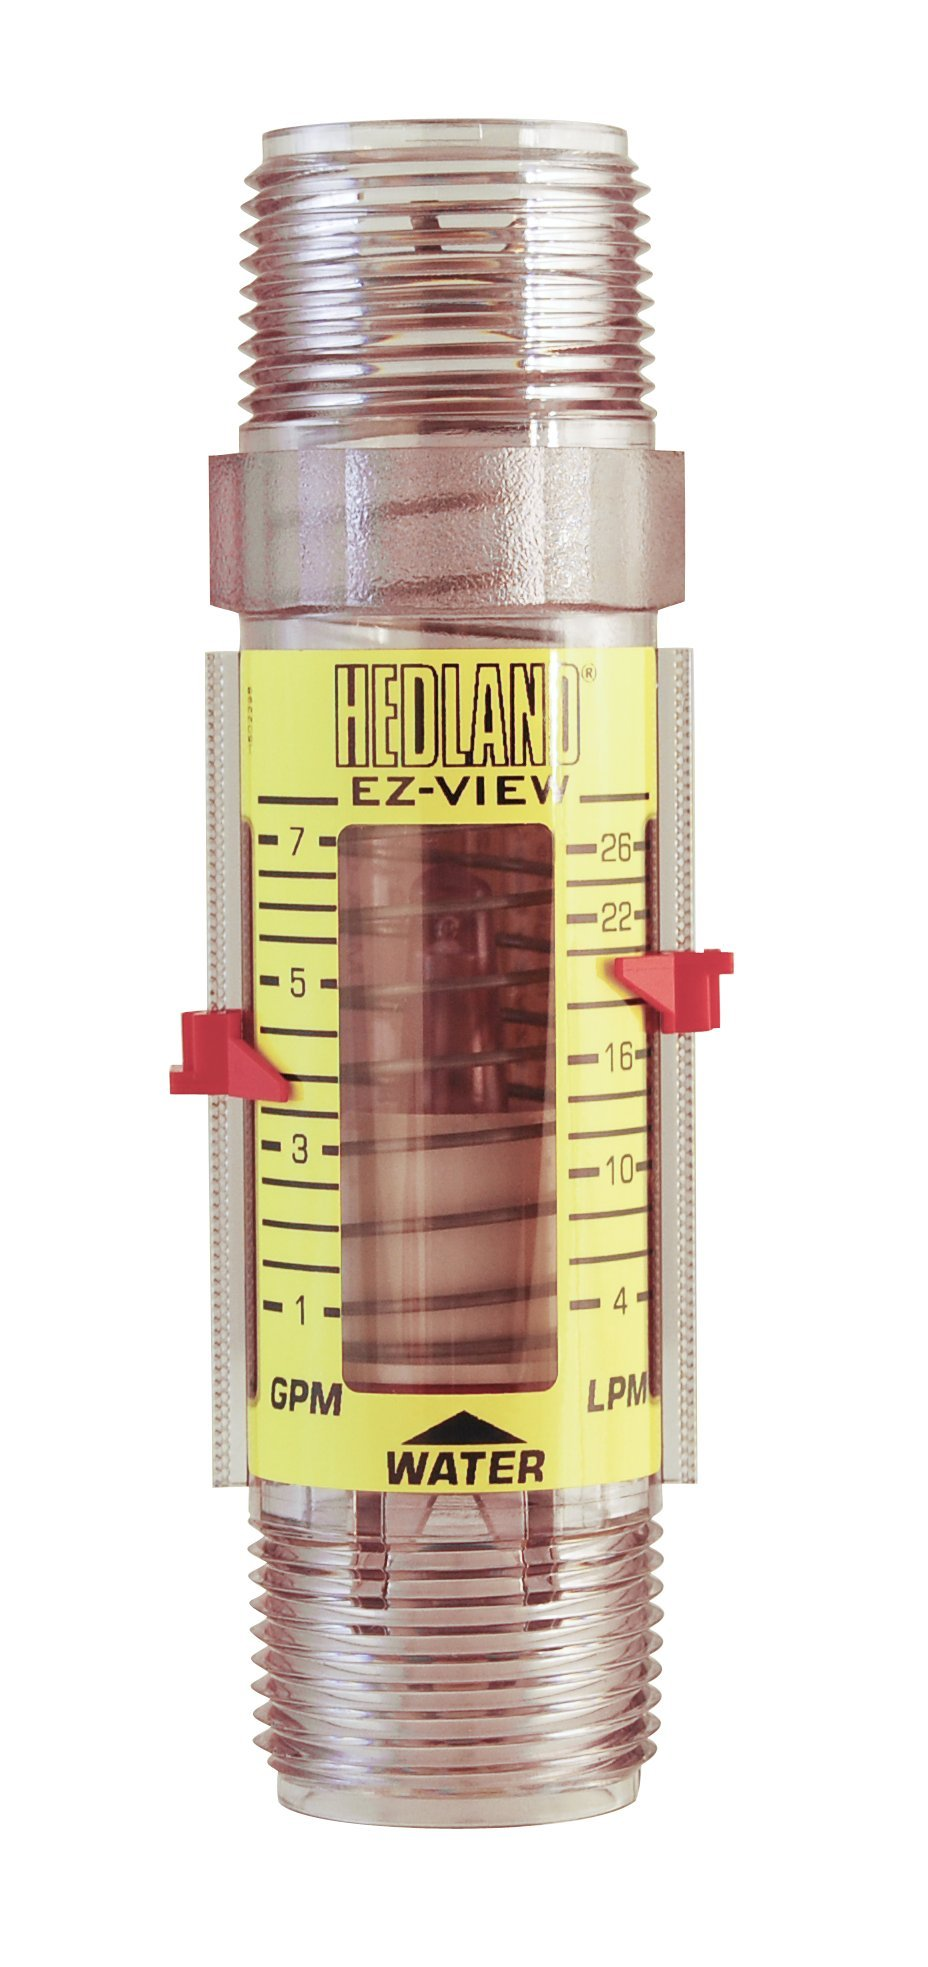 Hedland H621-007 EZ-View Flowmeter, Polysulfone, For Use With Water, 1.0-7 gpm Flow Range, 1'' NPT Male